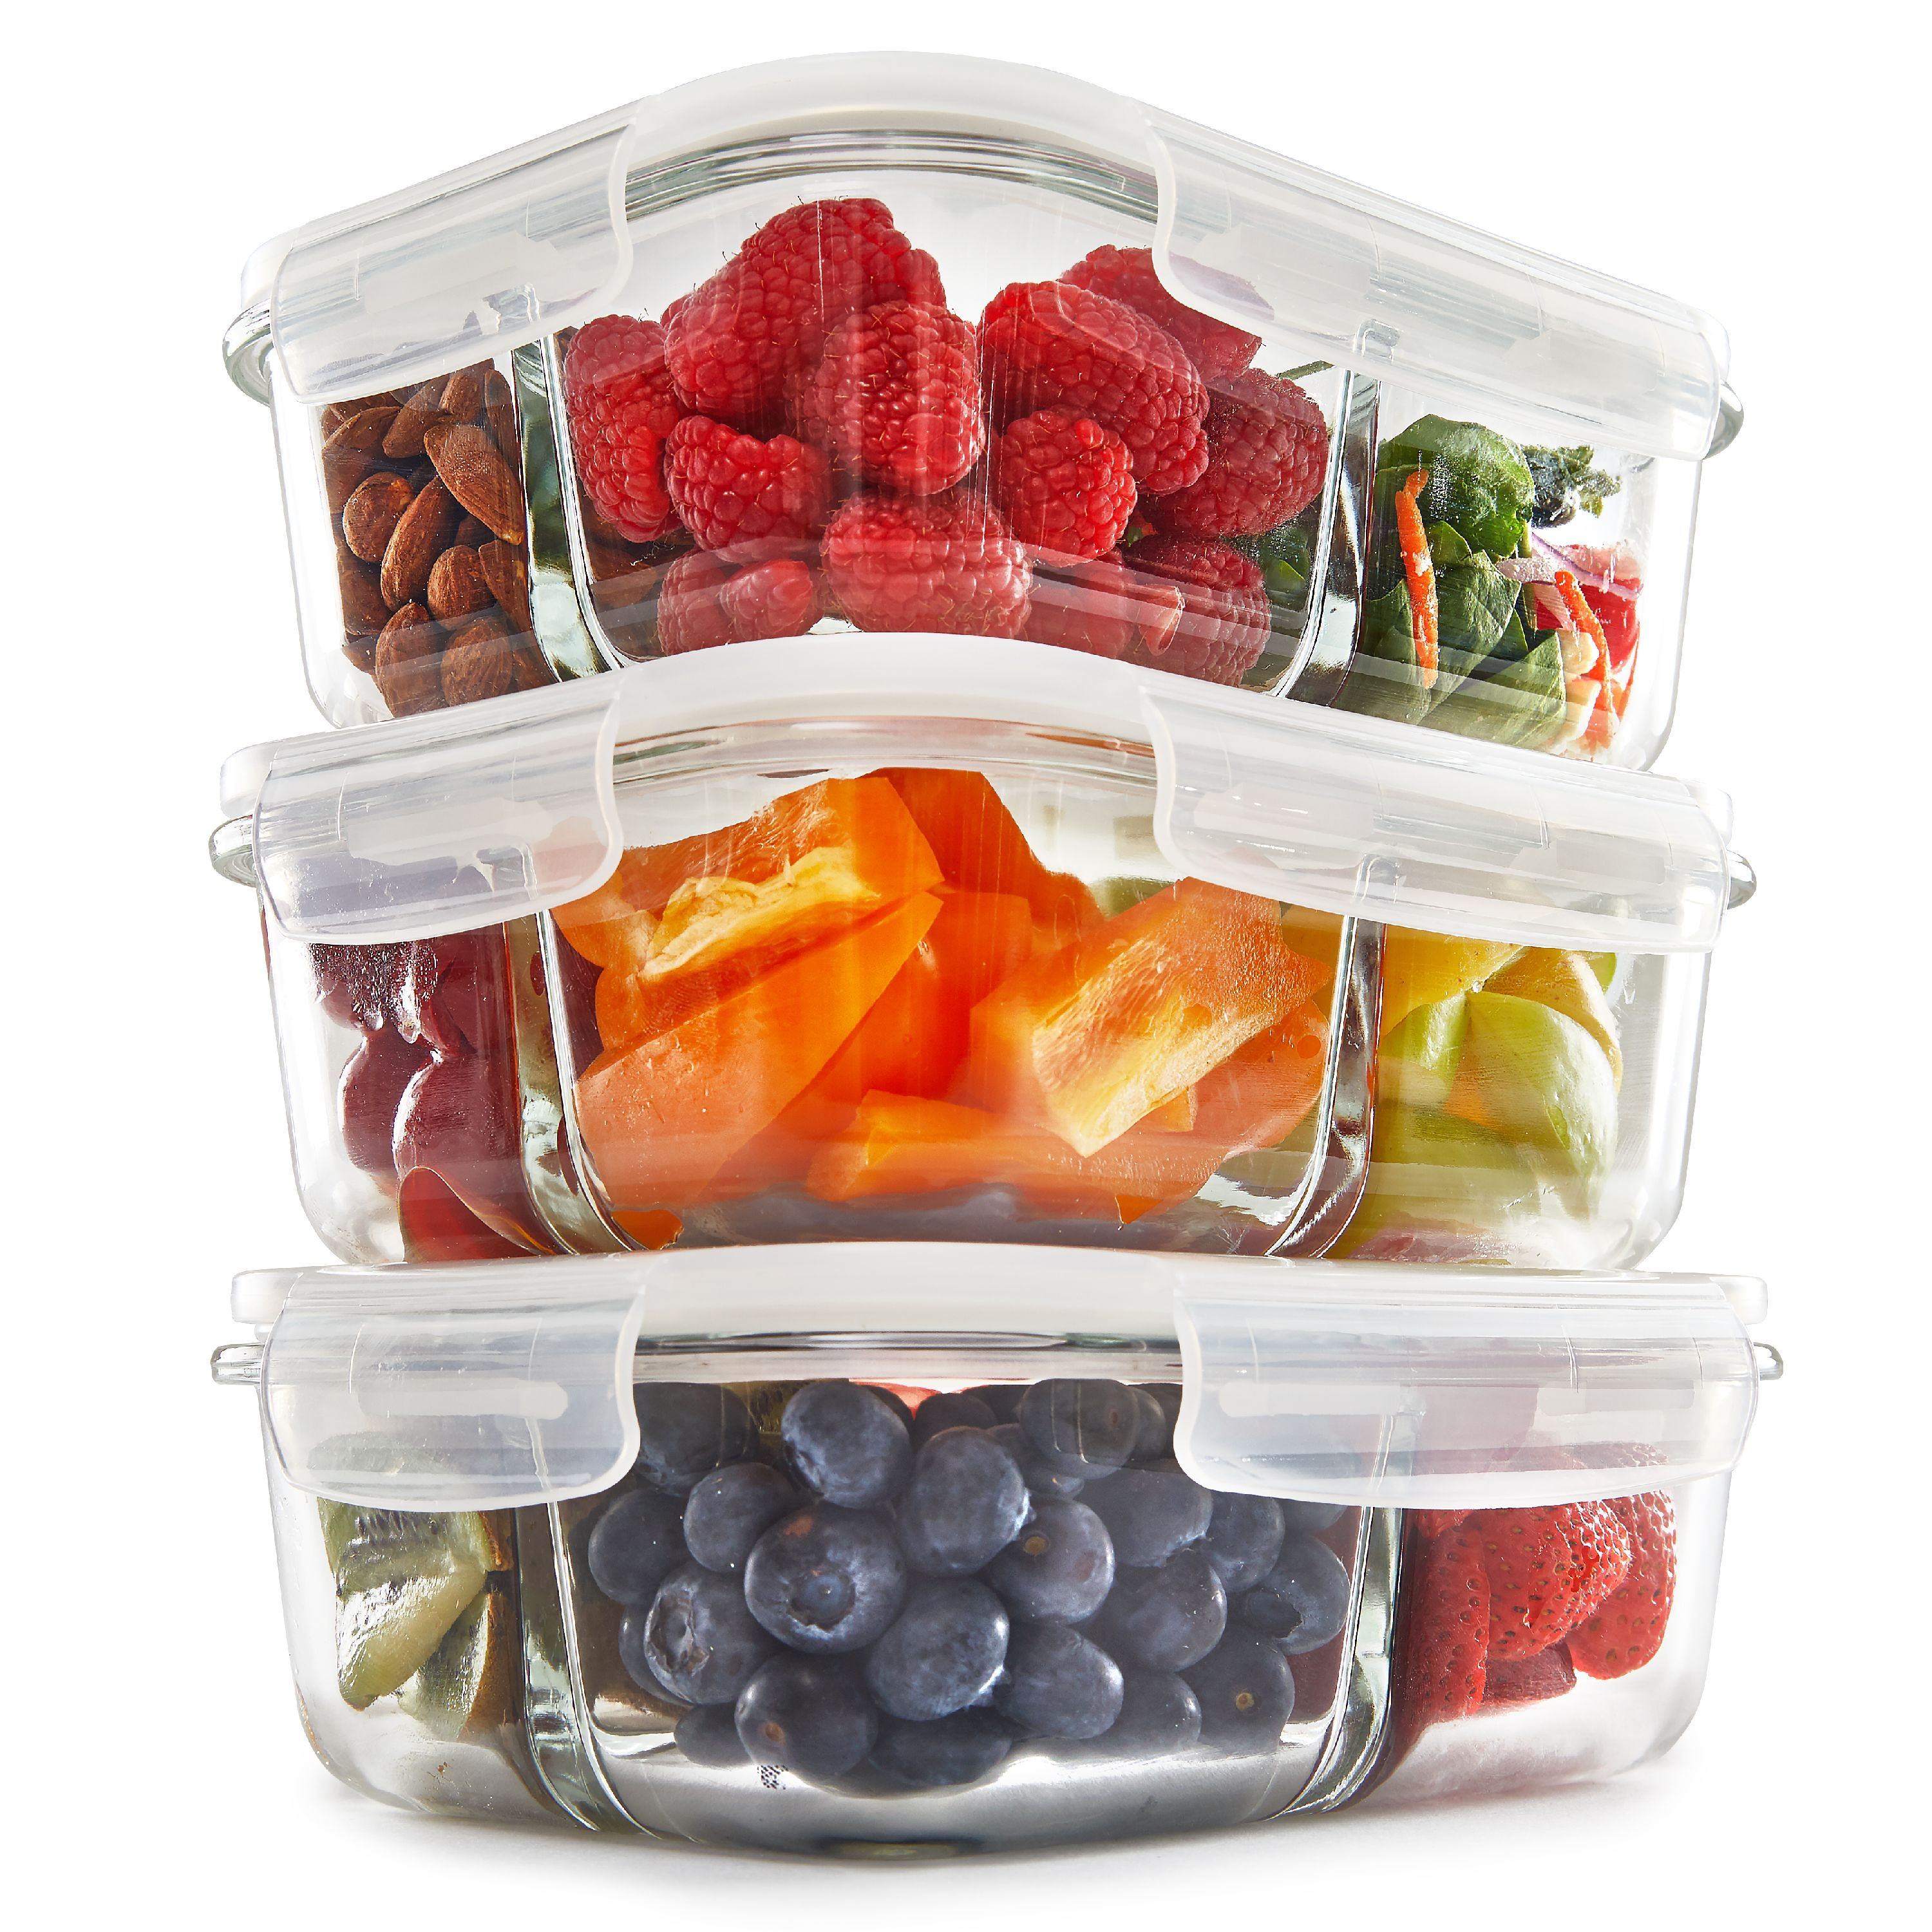 3 Compartment Glass Meal Prep Containers With Lids 3 Pack